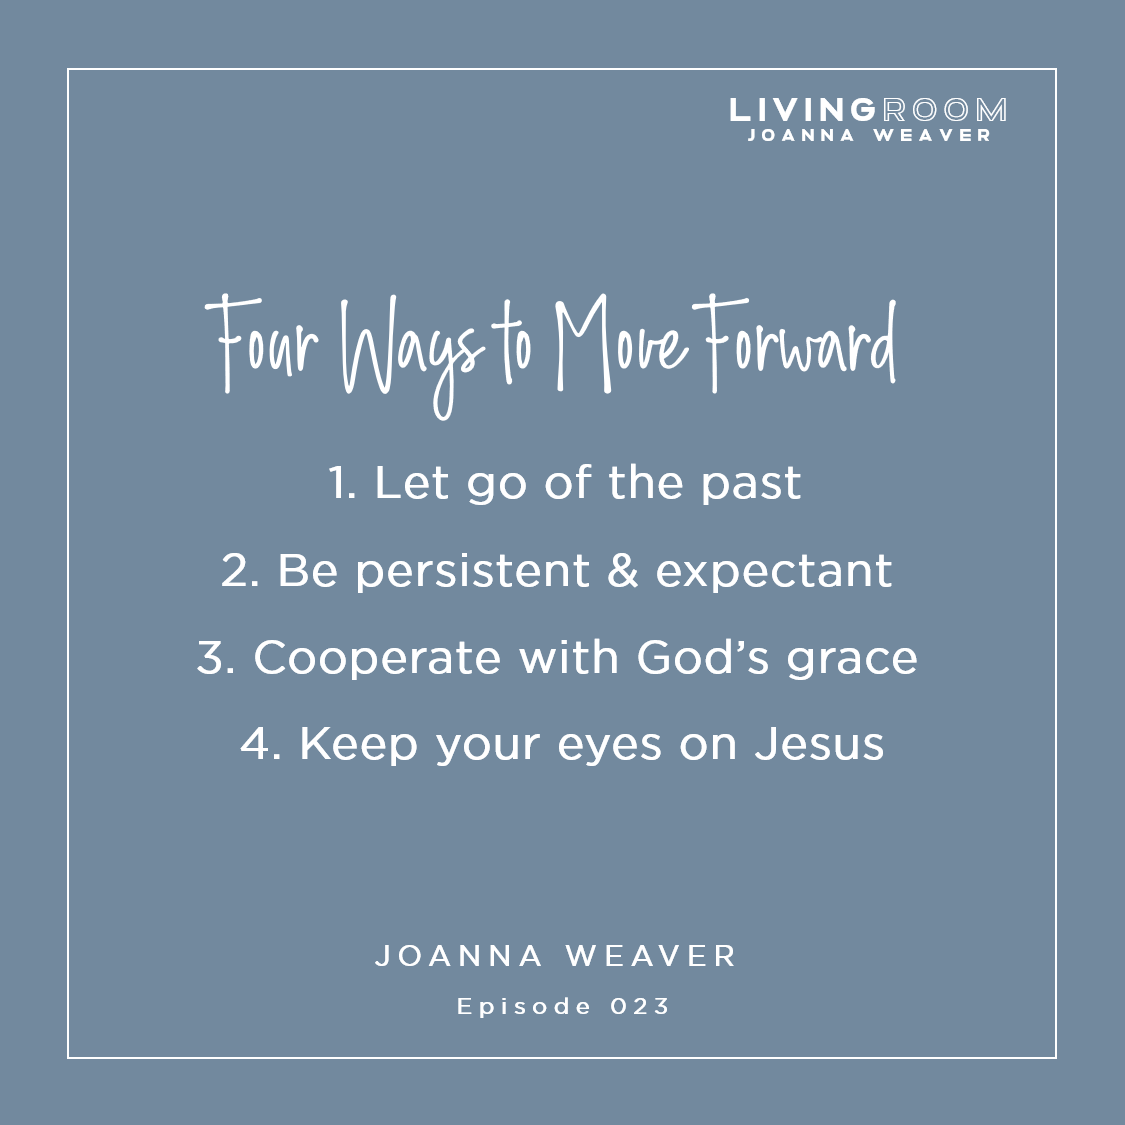 Four Ways to Move Forward - Joanna Weaver - The Living Room Epi. 23